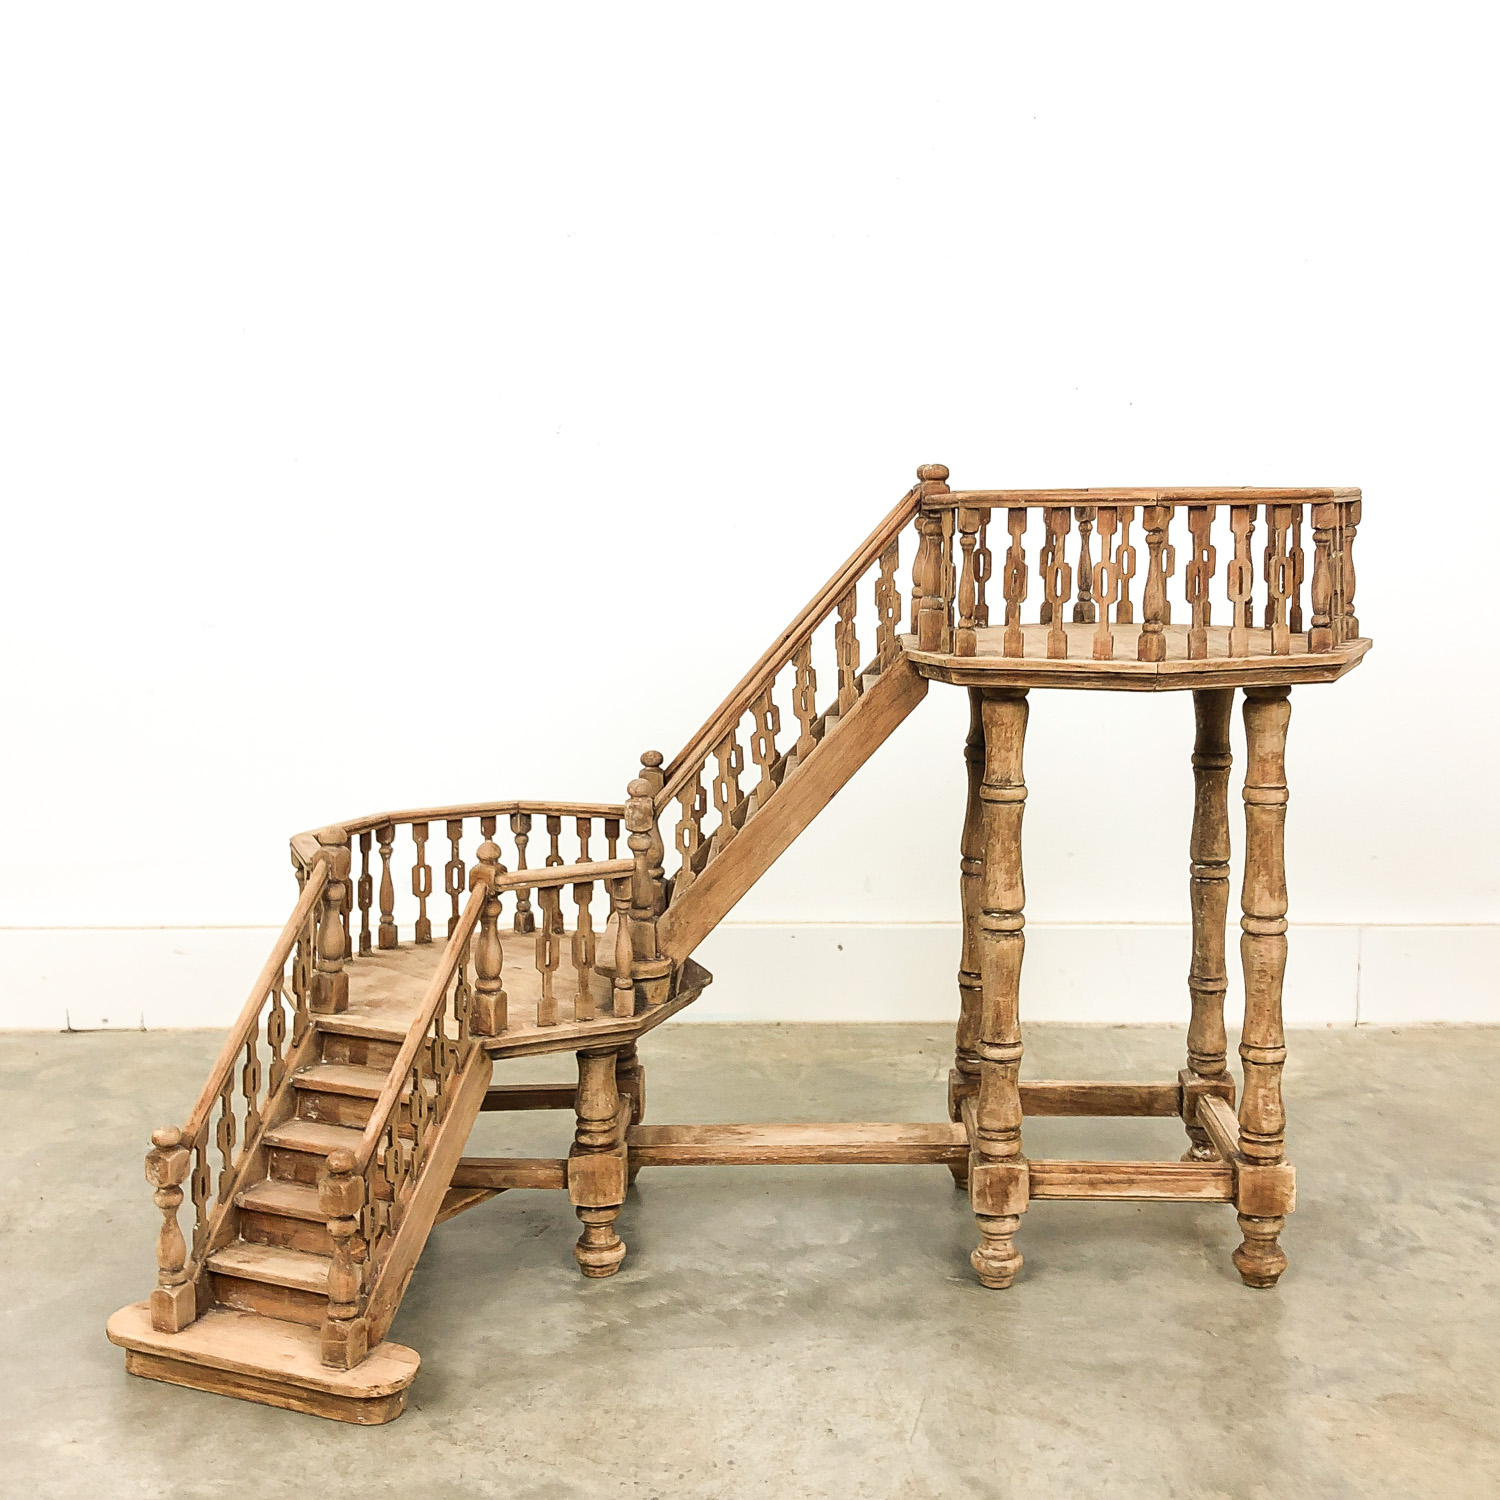 French Antique bleeched wooden staircase model